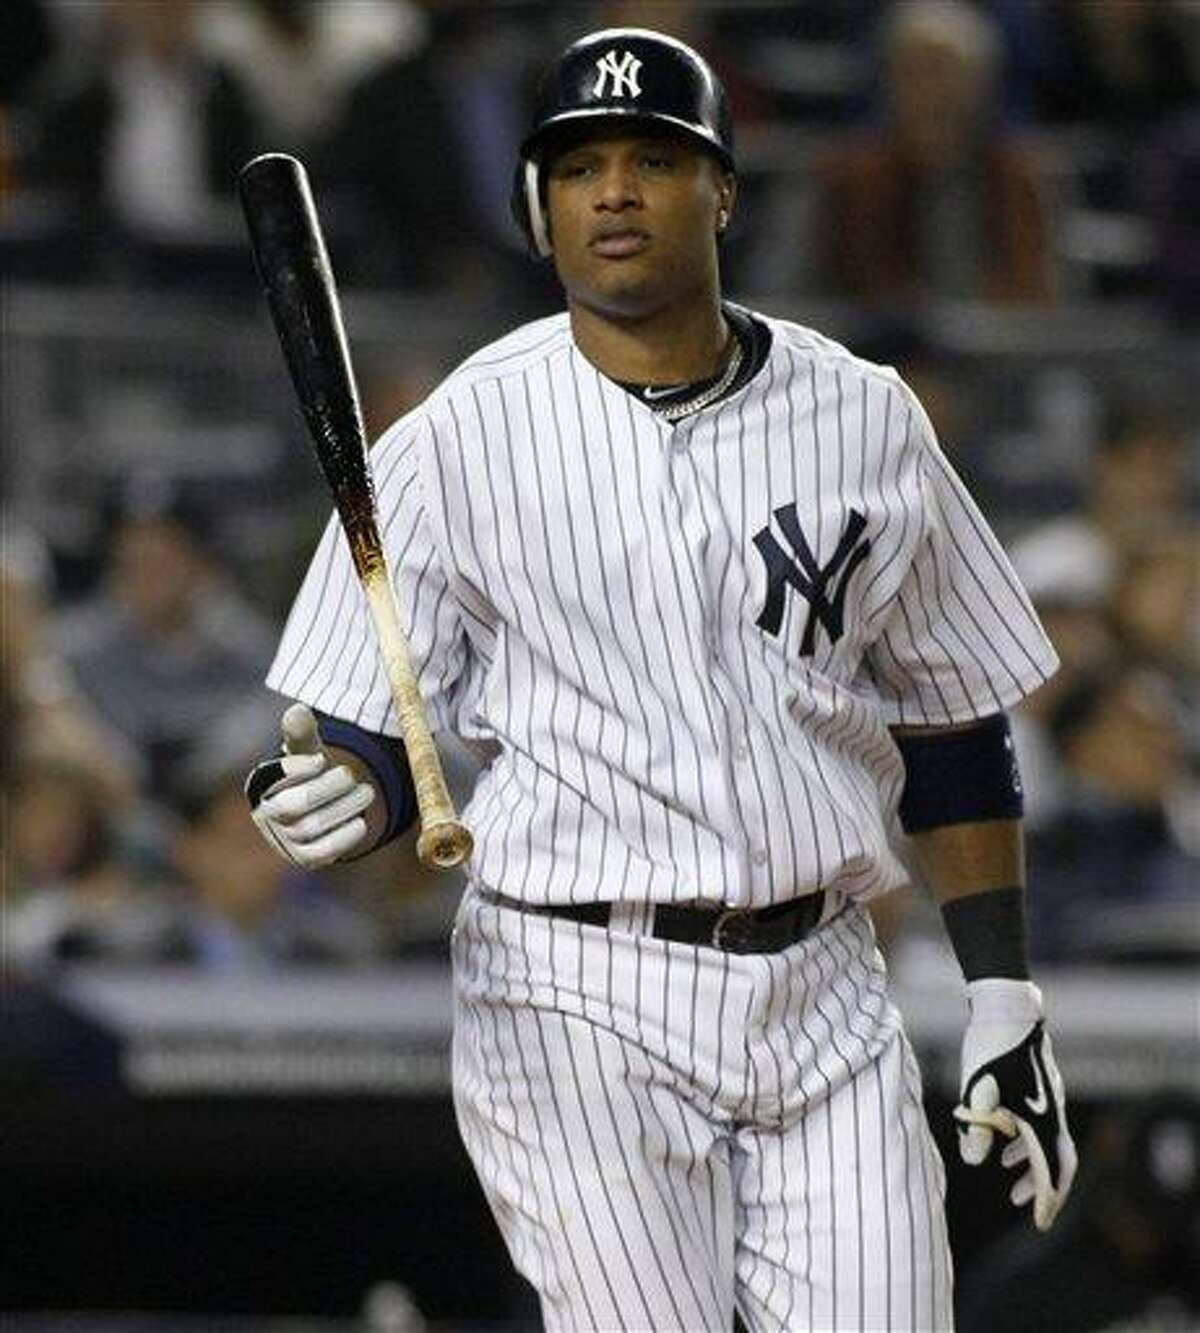 New York Yankees Robinson Cano flips his bat after striking out swinging with two runners on board in the Yankees 2-0 loss to the Chicago White Sox Monday in New York. (AP Photo/Kathy Willens)